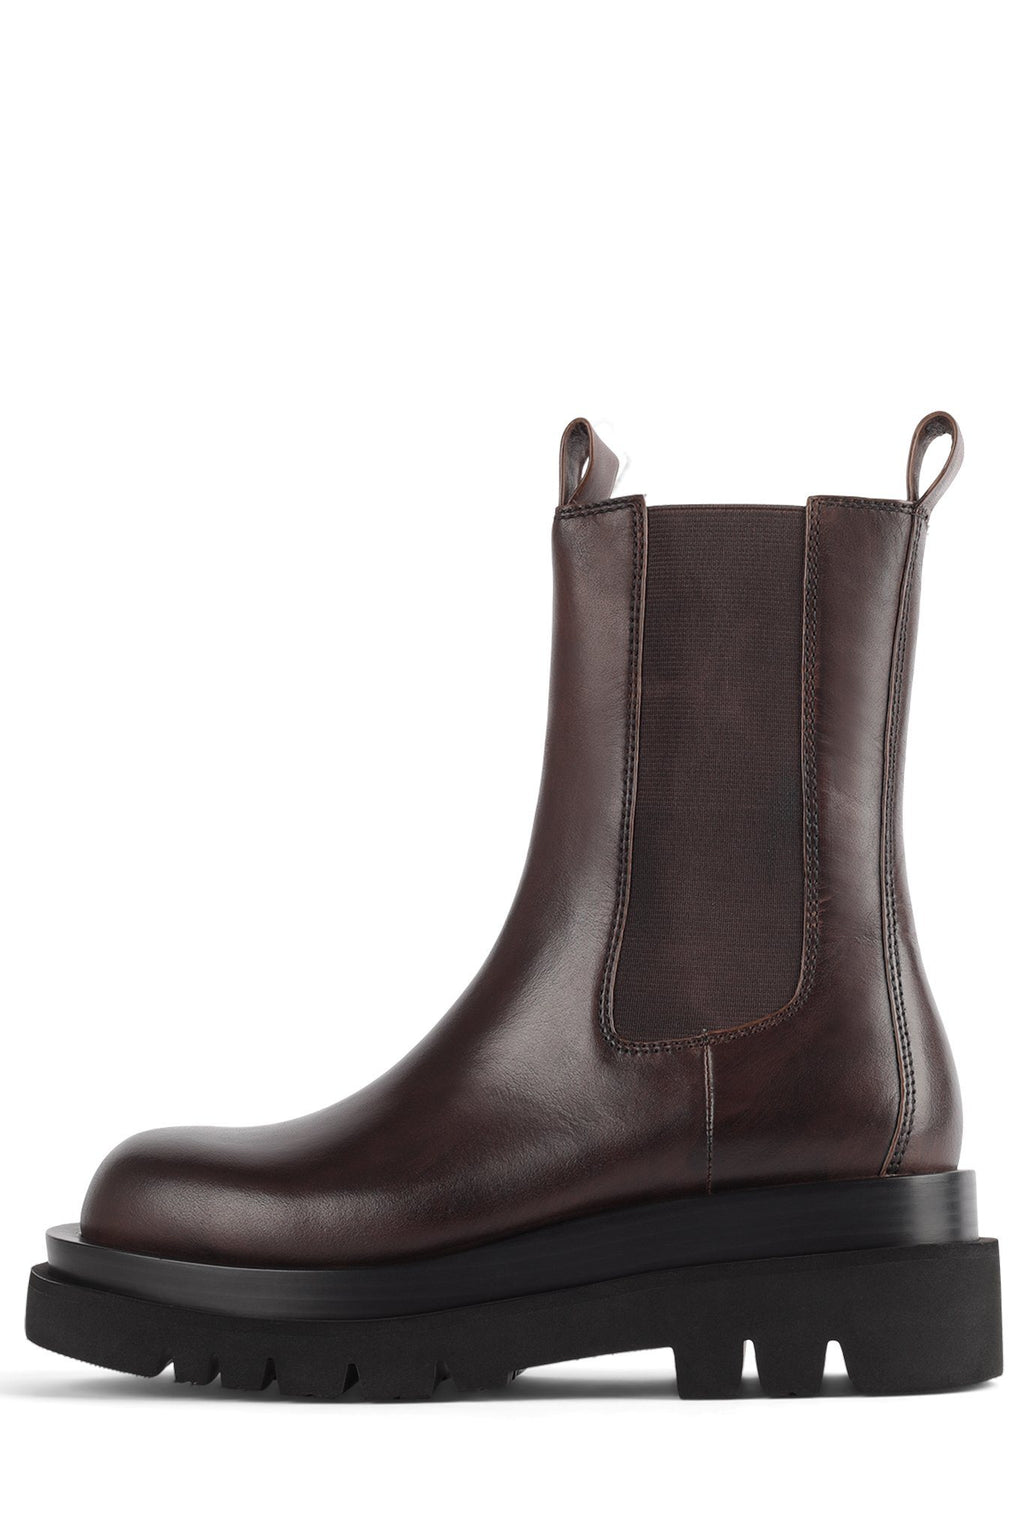 TANKED Platform Boot Jeffrey Campbell Dark Brown 6